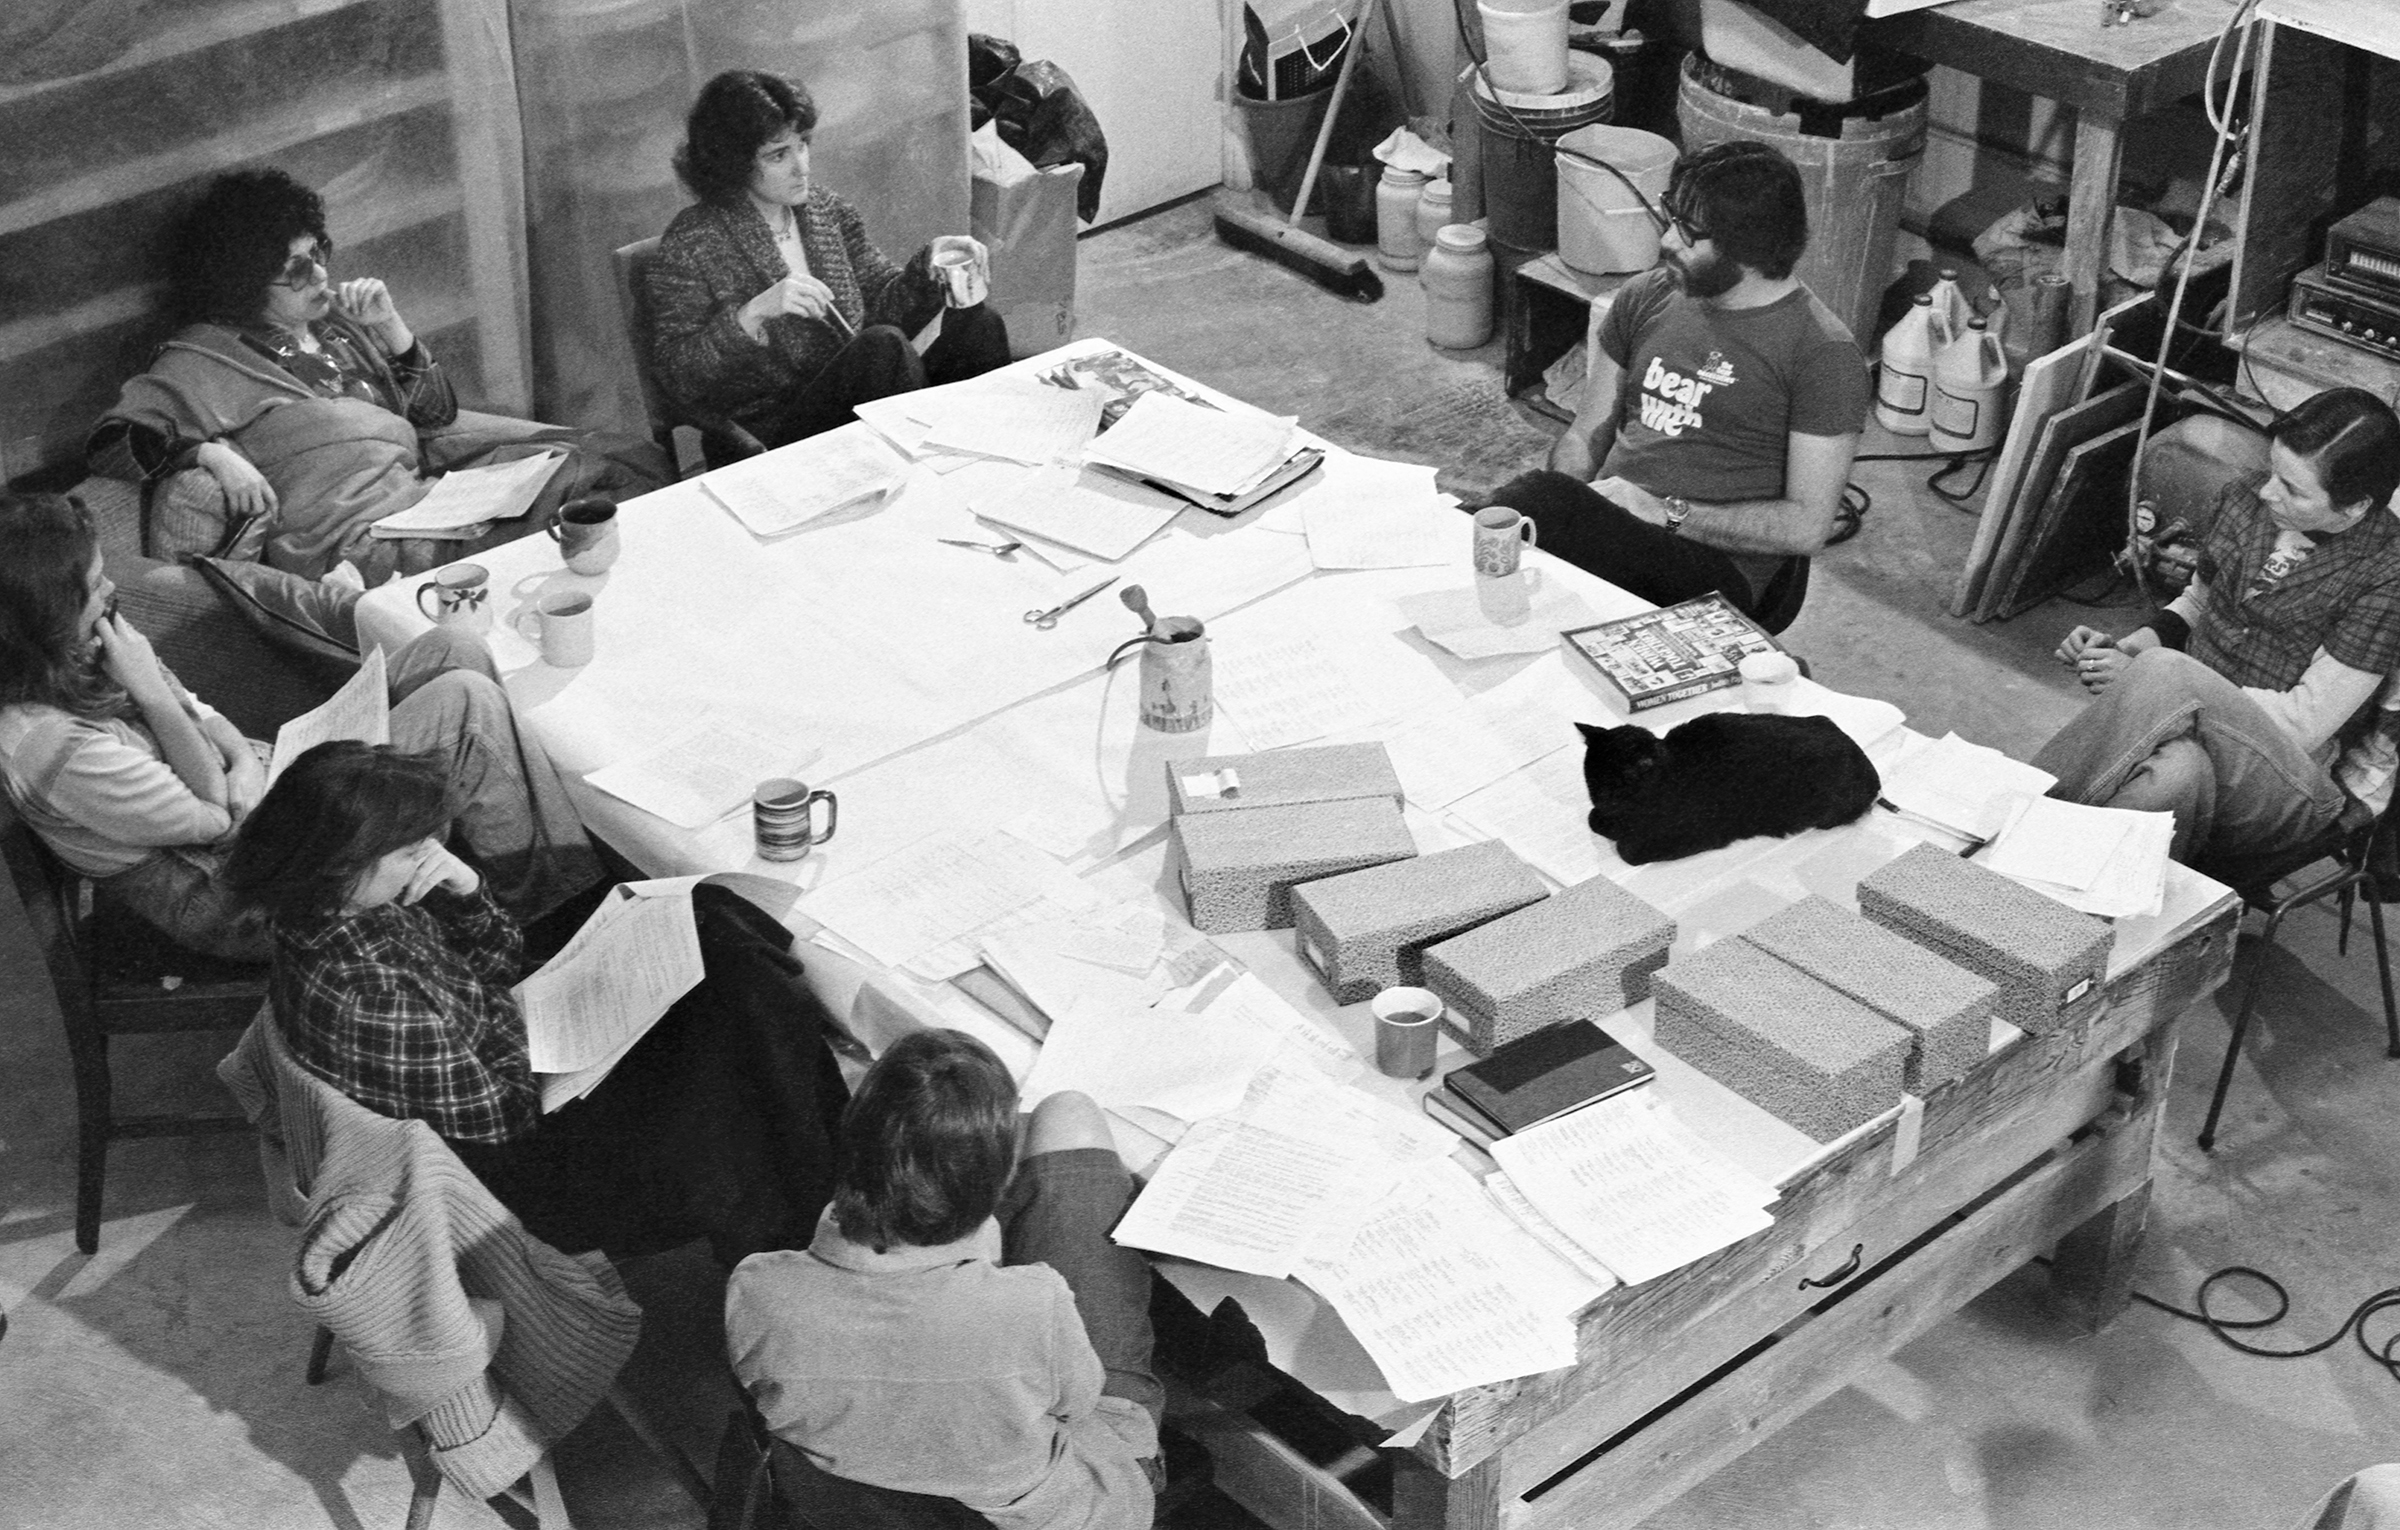 Research meeting in The Dinner Party studio, Santa Monica, CA, 1978. Courtesy the Judy Chicago Visual Archive, Betty Boyd Dettre Library and Research Center, The National Museum of Women in the Arts